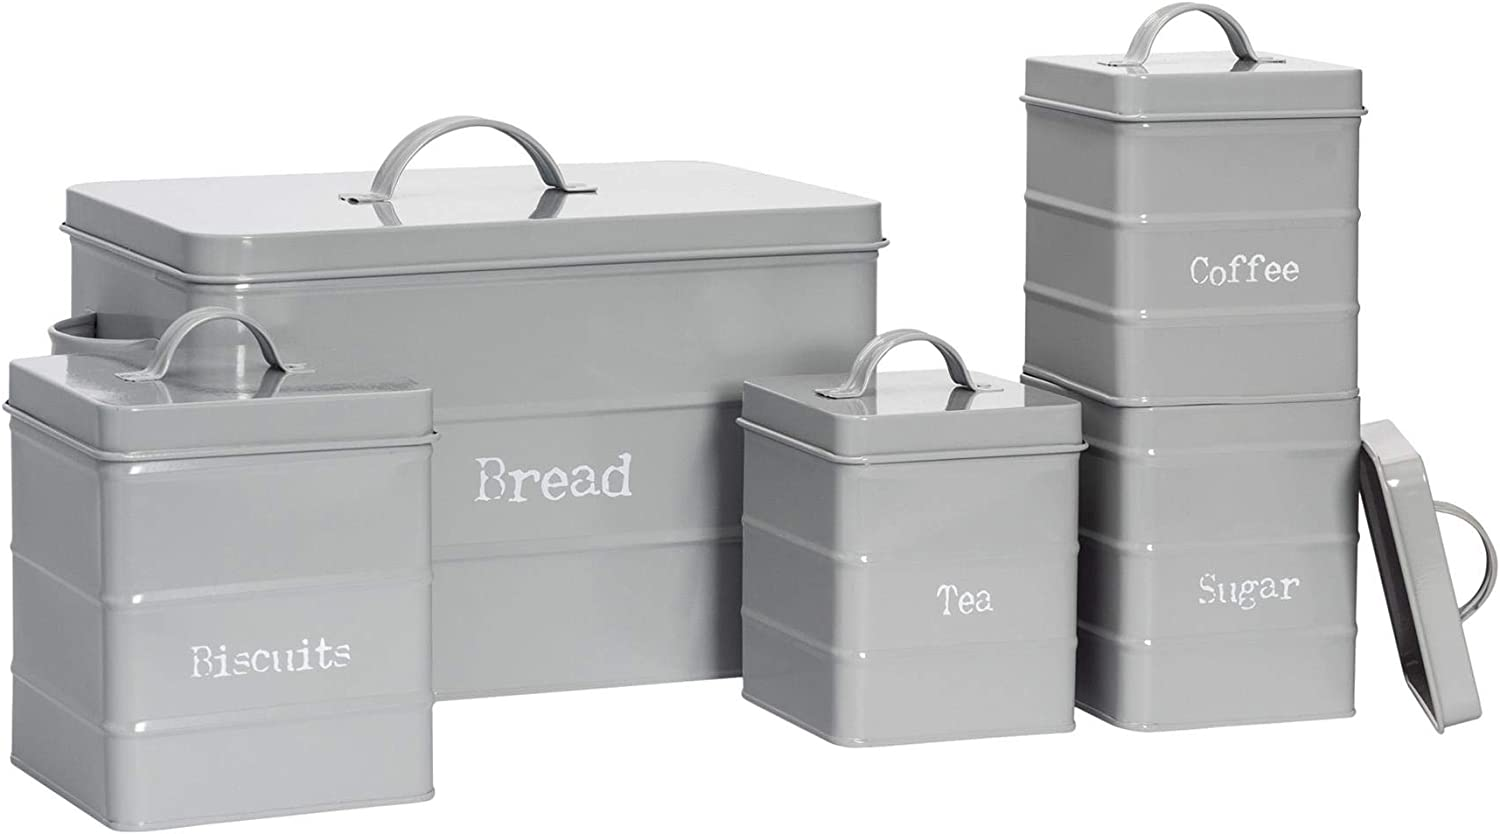 Harbour Housewares 5 Piece Industrial Kitchen Storage Canister Set Vintage Style Steel Tea Coffee Sugar Caddy With Lid Grey Amazon Co Uk Home Kitchen